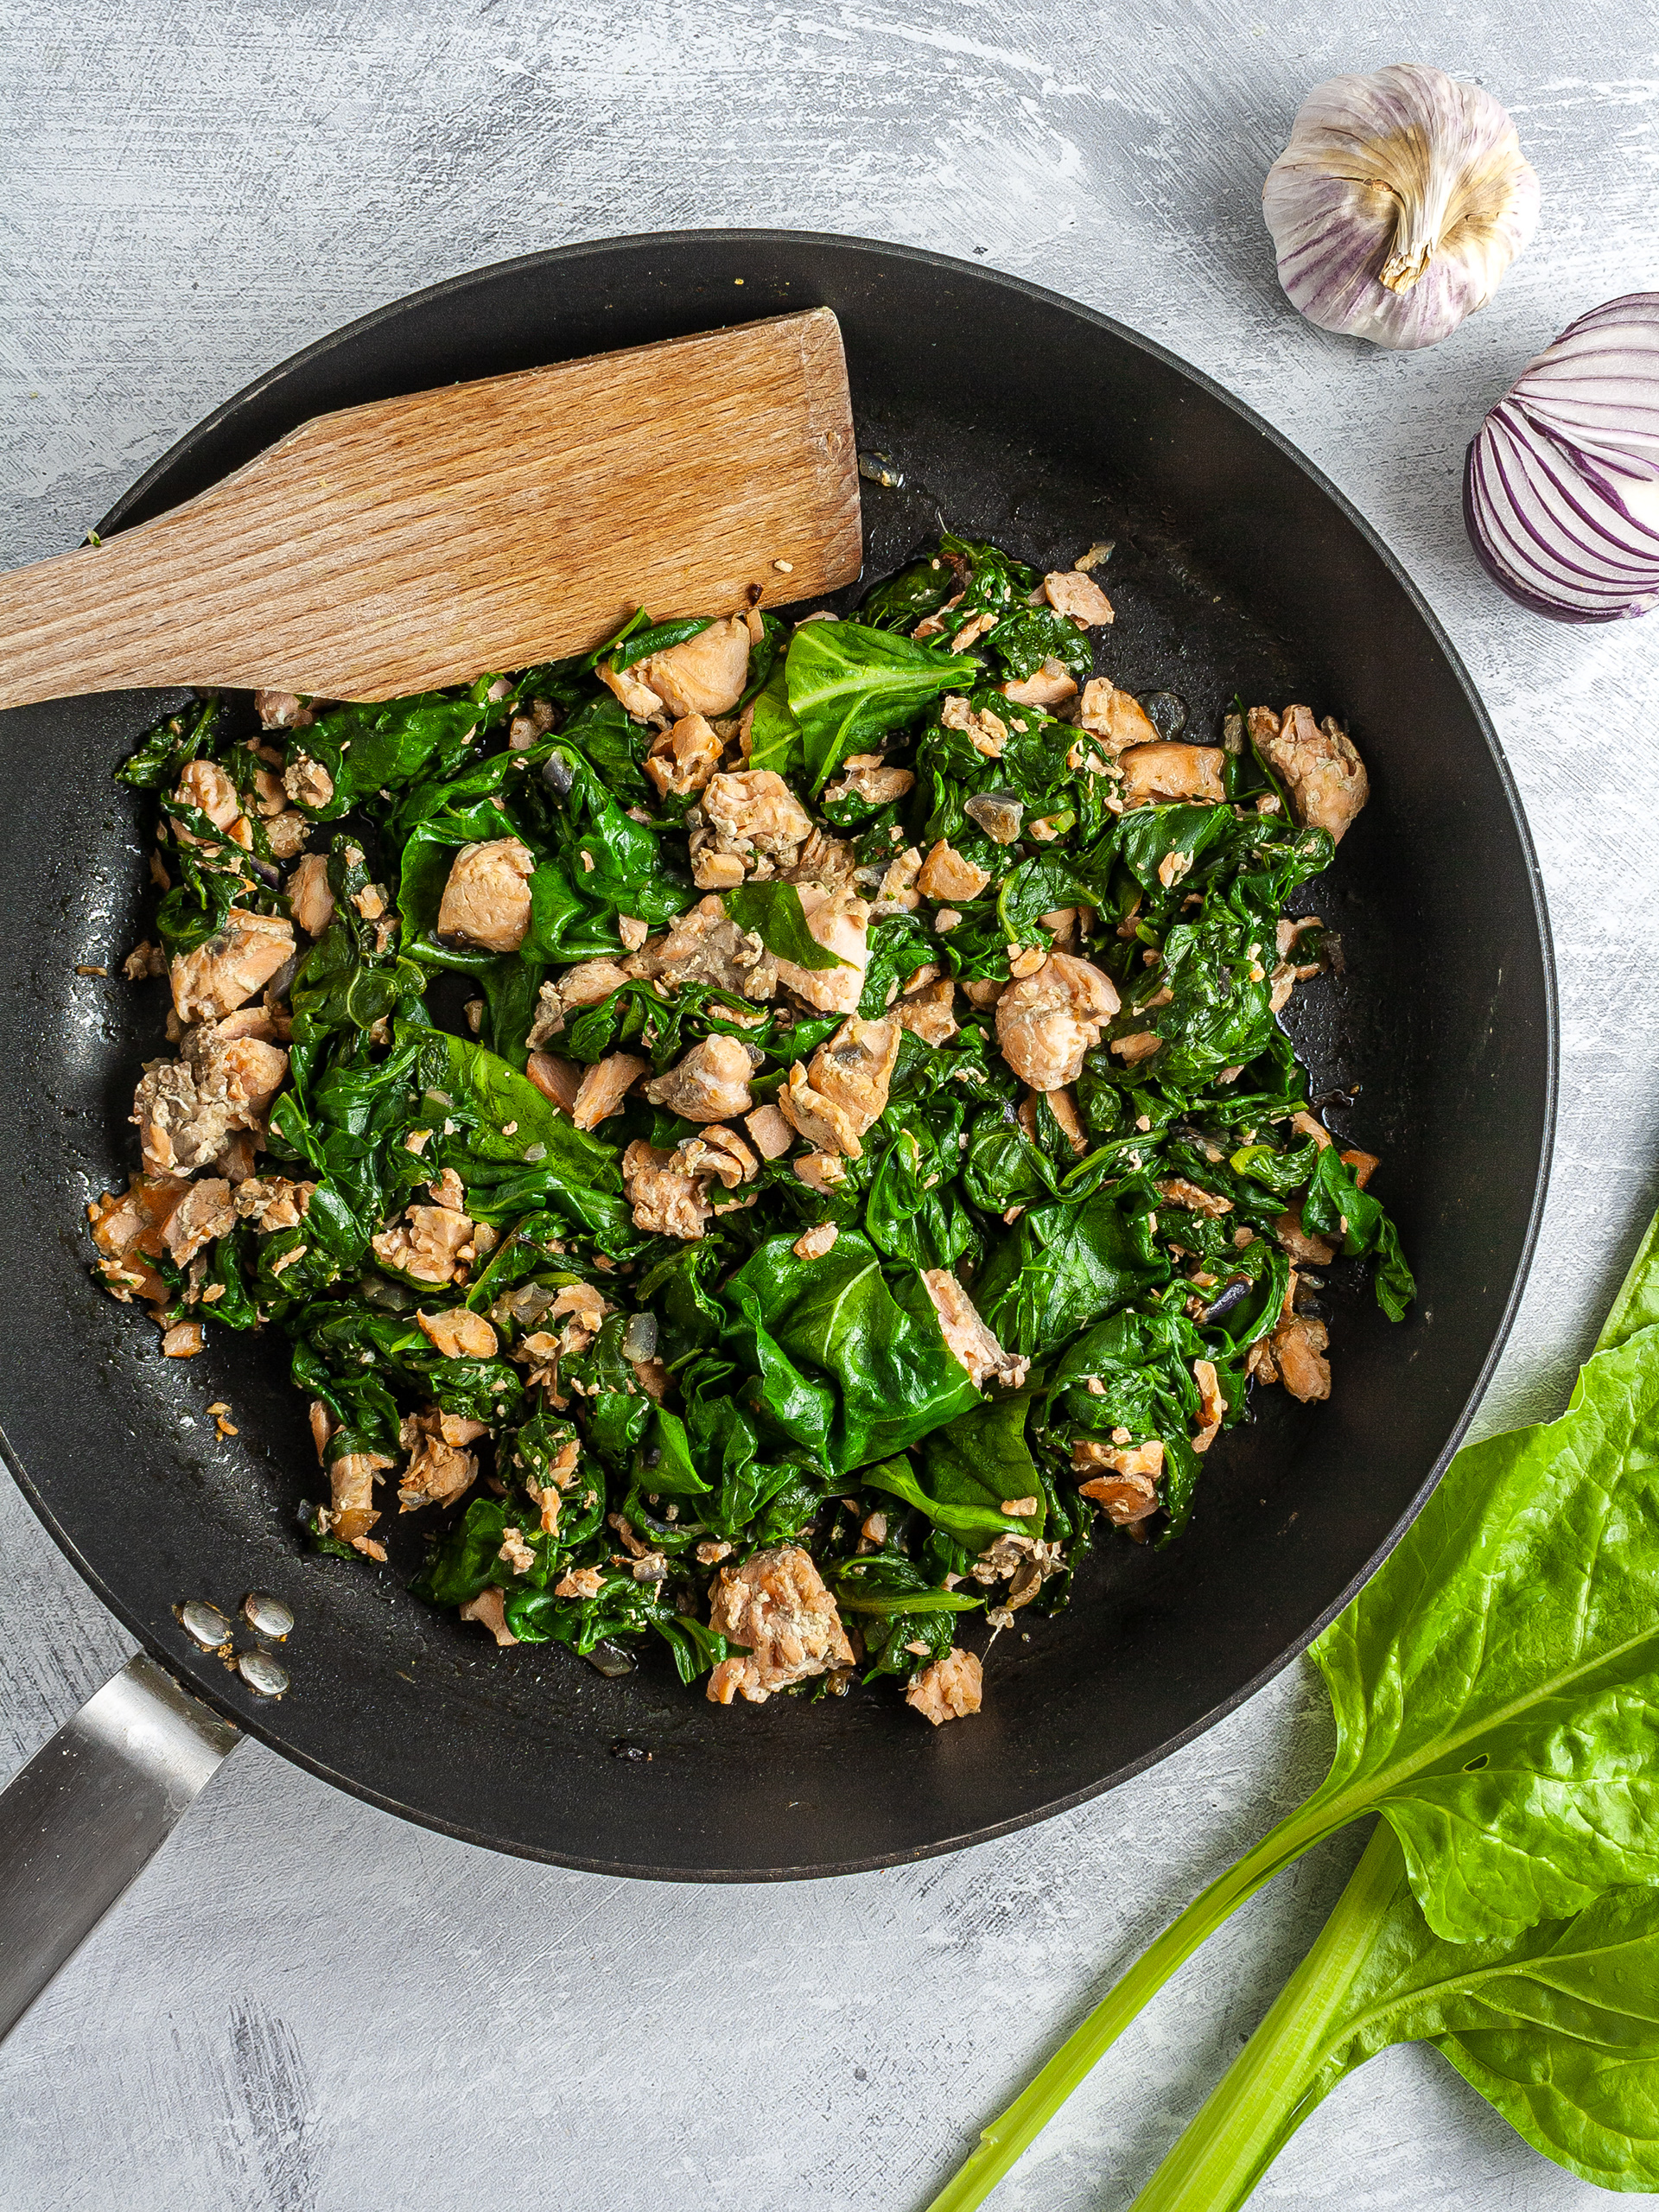 Cooked spinach and salmon